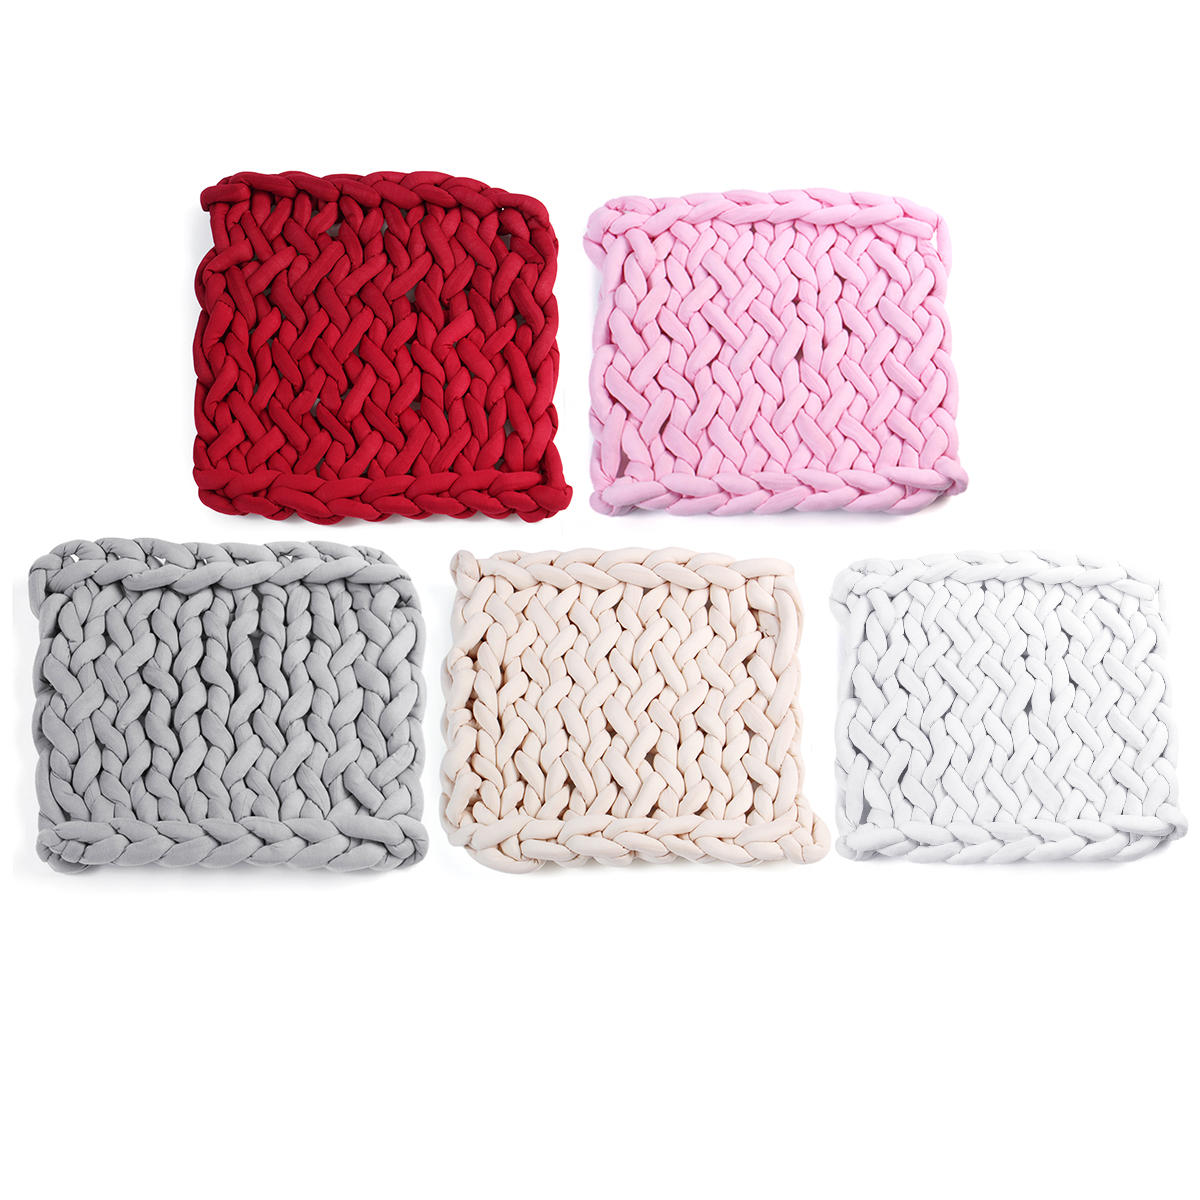 50 x 50cm Handmade Knitted Blanket Cotton Soft Washable Lint free Throw Multicolored Thick Thread Blankets - 1